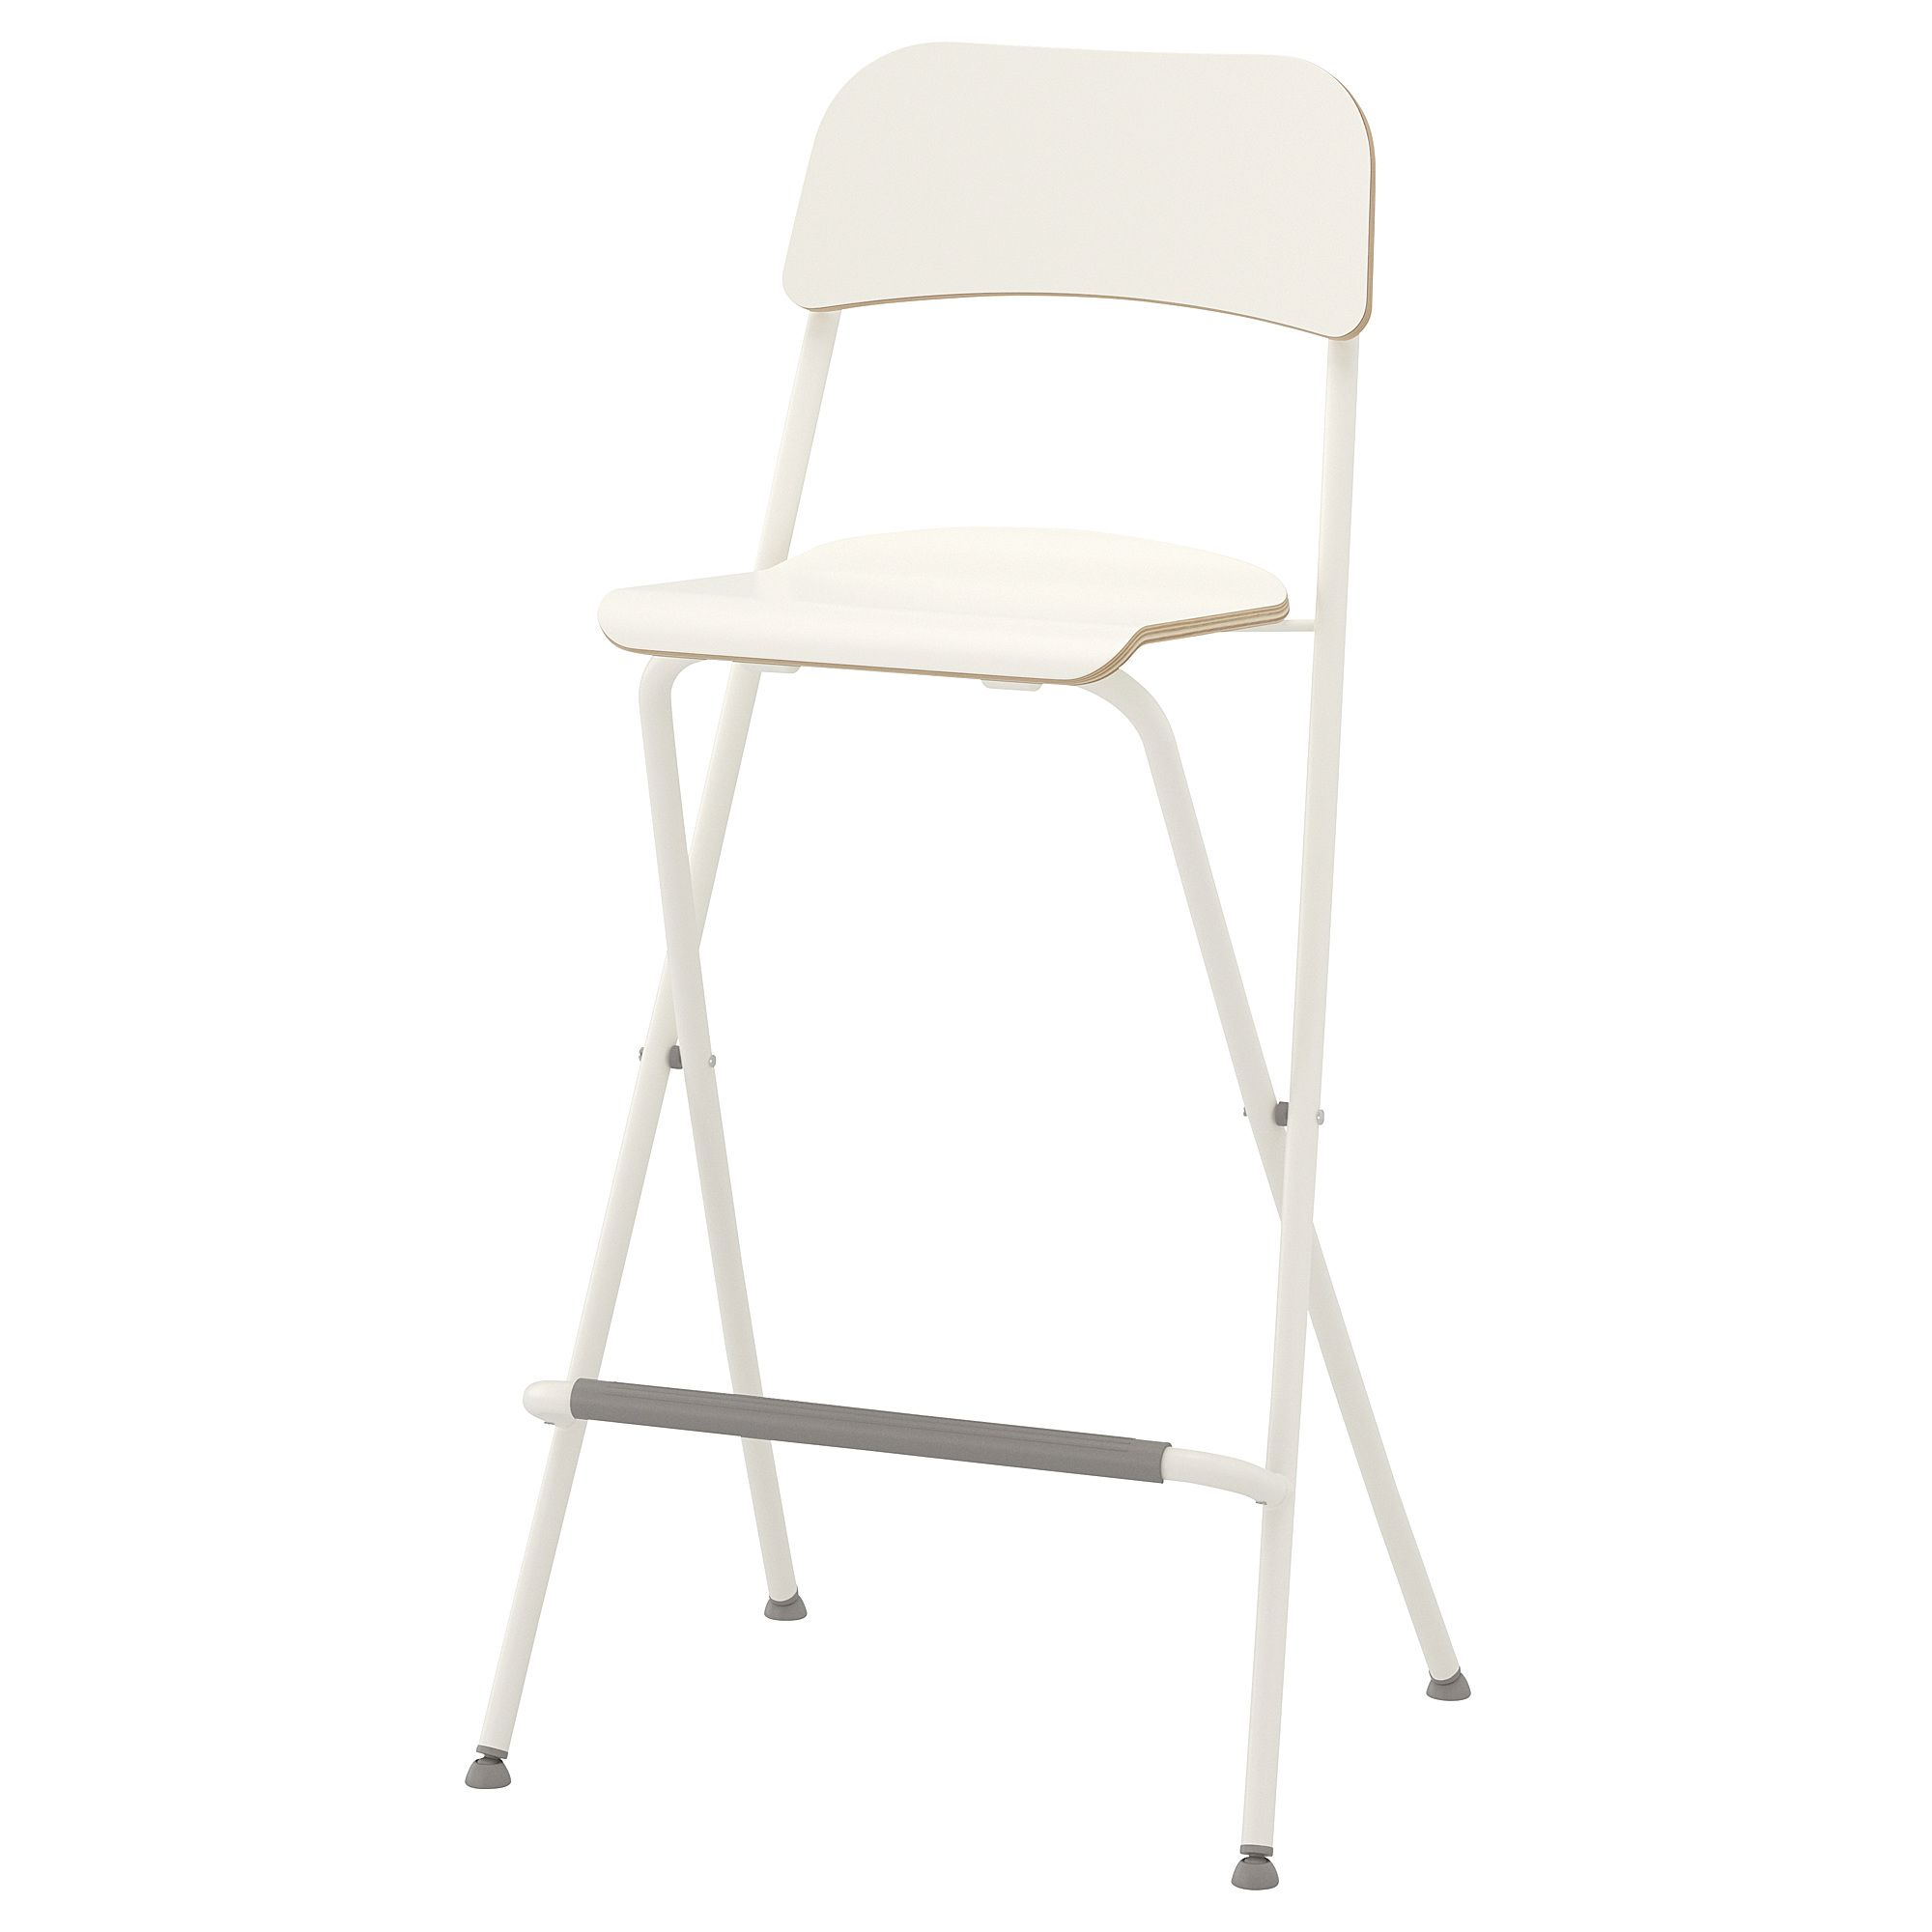 Ikea Franklin White White Bar Stool With Backrest Foldable Bar